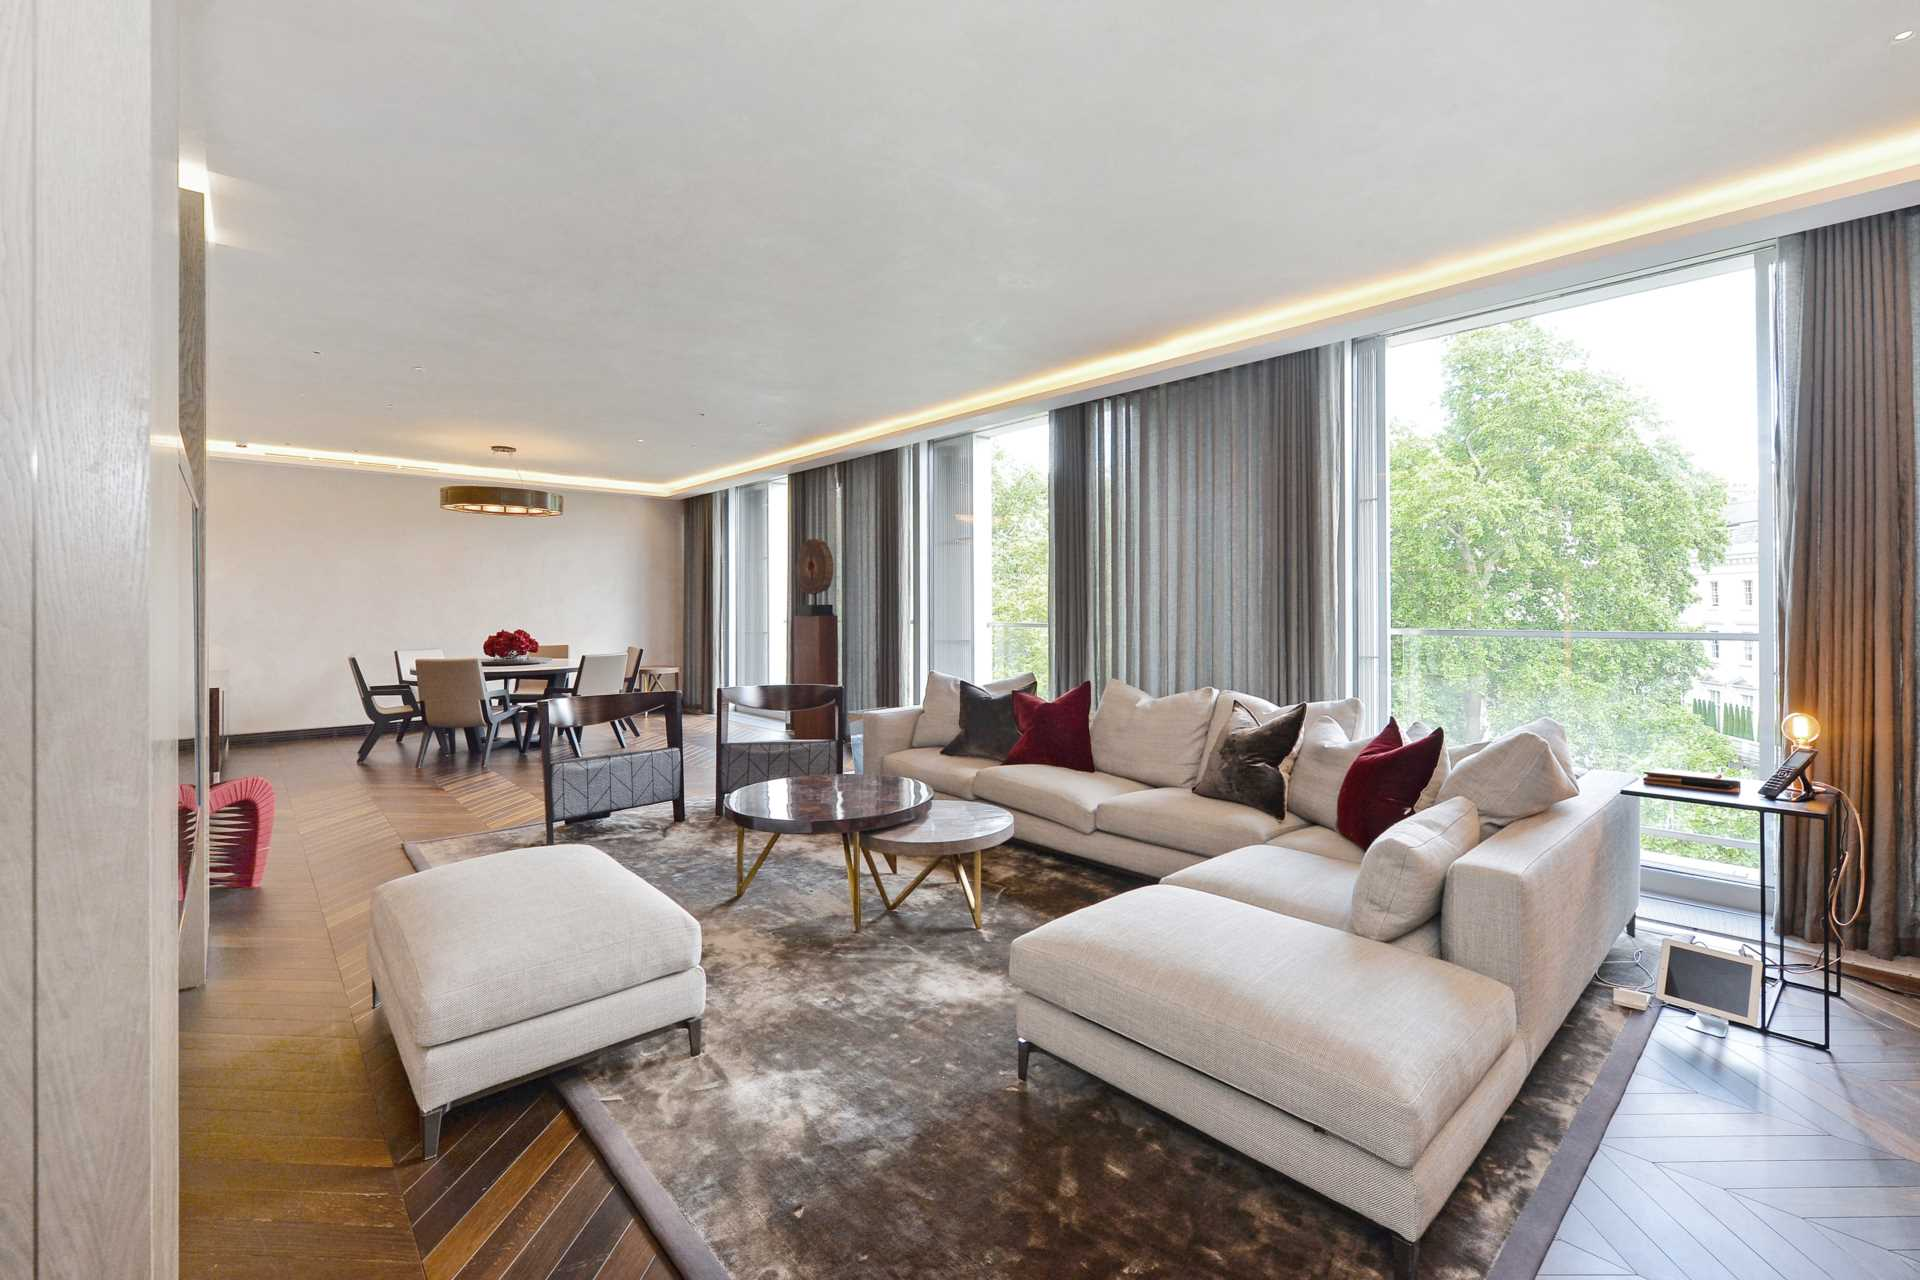 5 bed Apartment for rent in London. From Rokstone